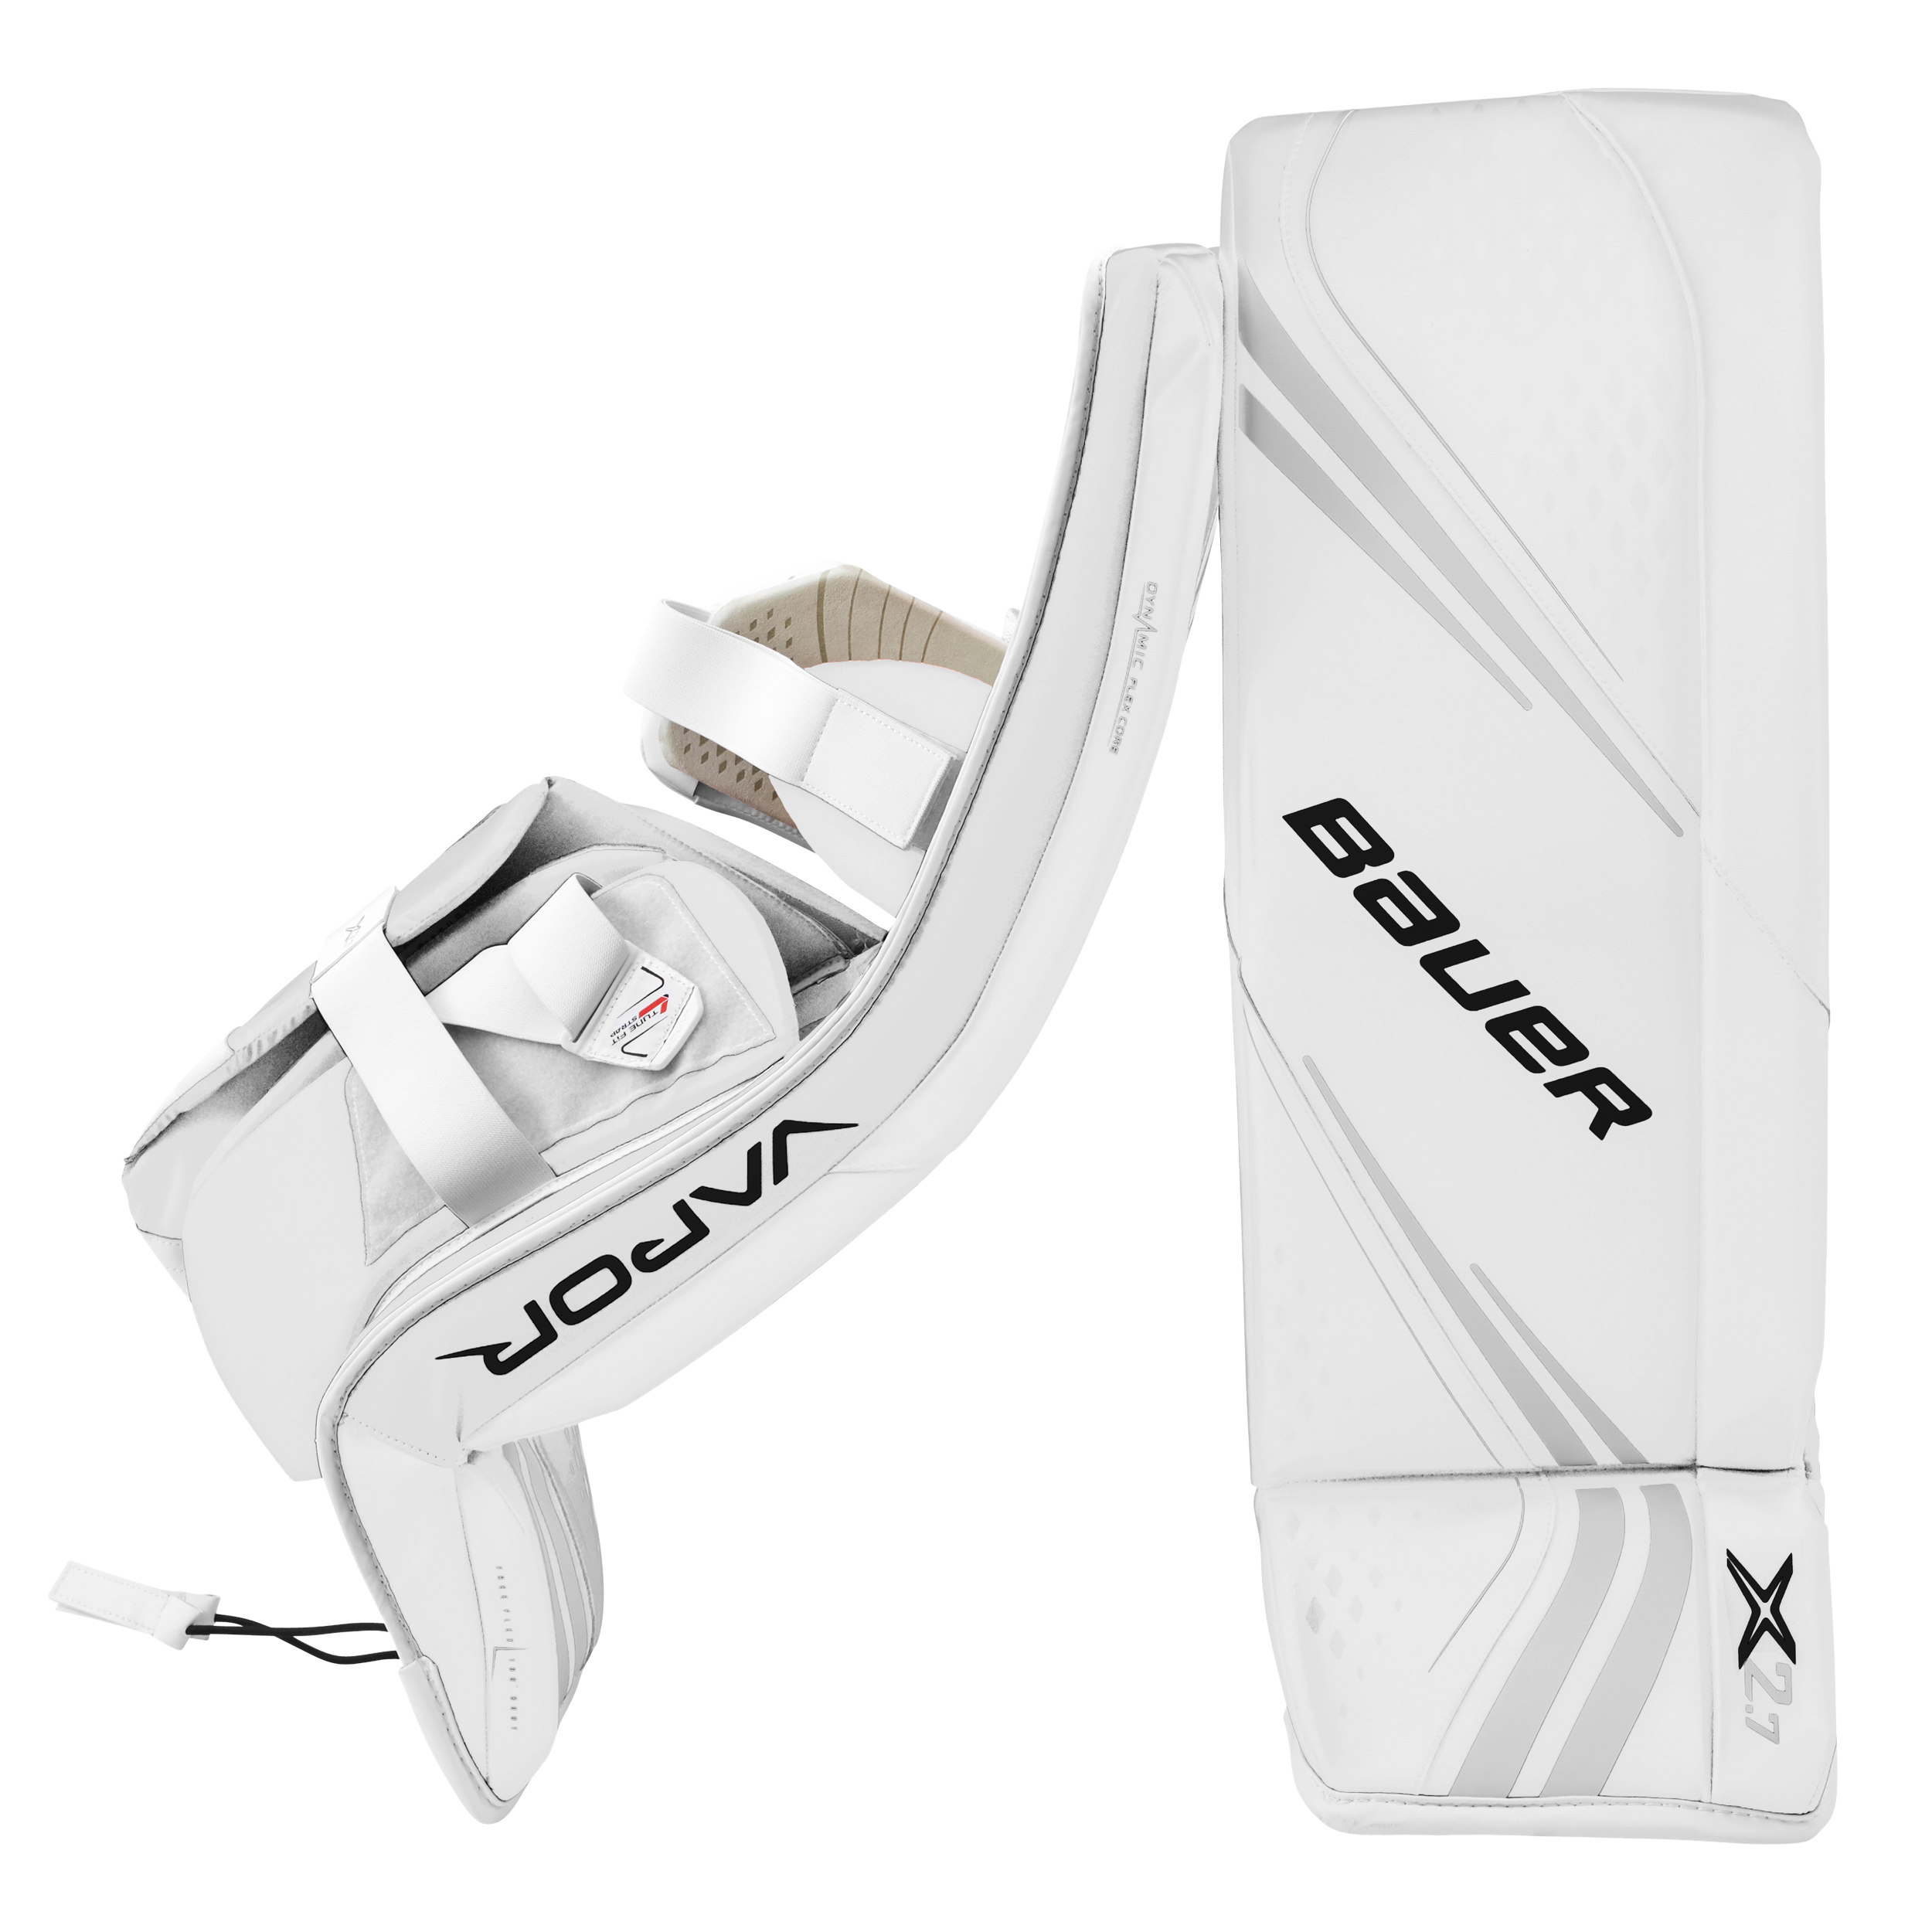 Vapor X2.7 Goal Pad Junior,,Medium